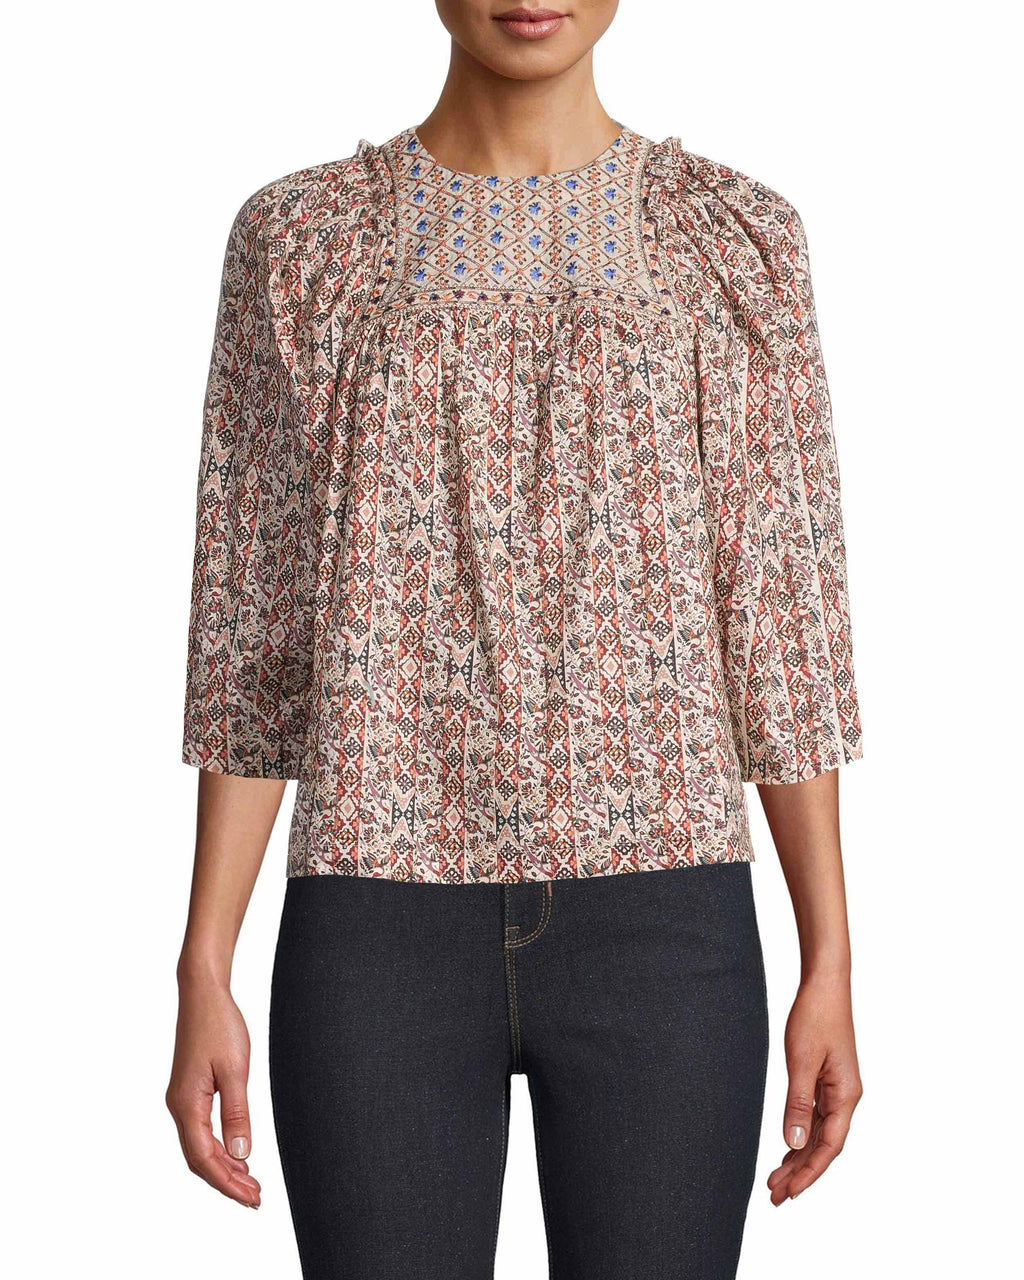 CT18471 - PARTRIDGE STRIPE EMBROIDERED BLOUSE - tops - blouses - Dainty blue floral embroidery perfectly contrasts against our earthy partridge stripe print on this feminine blouse. The puffed sleeves feature subtle ruffling along the shoulder for added texture. Add 1 line break Stylist Tip: Style with our wide leg denim.